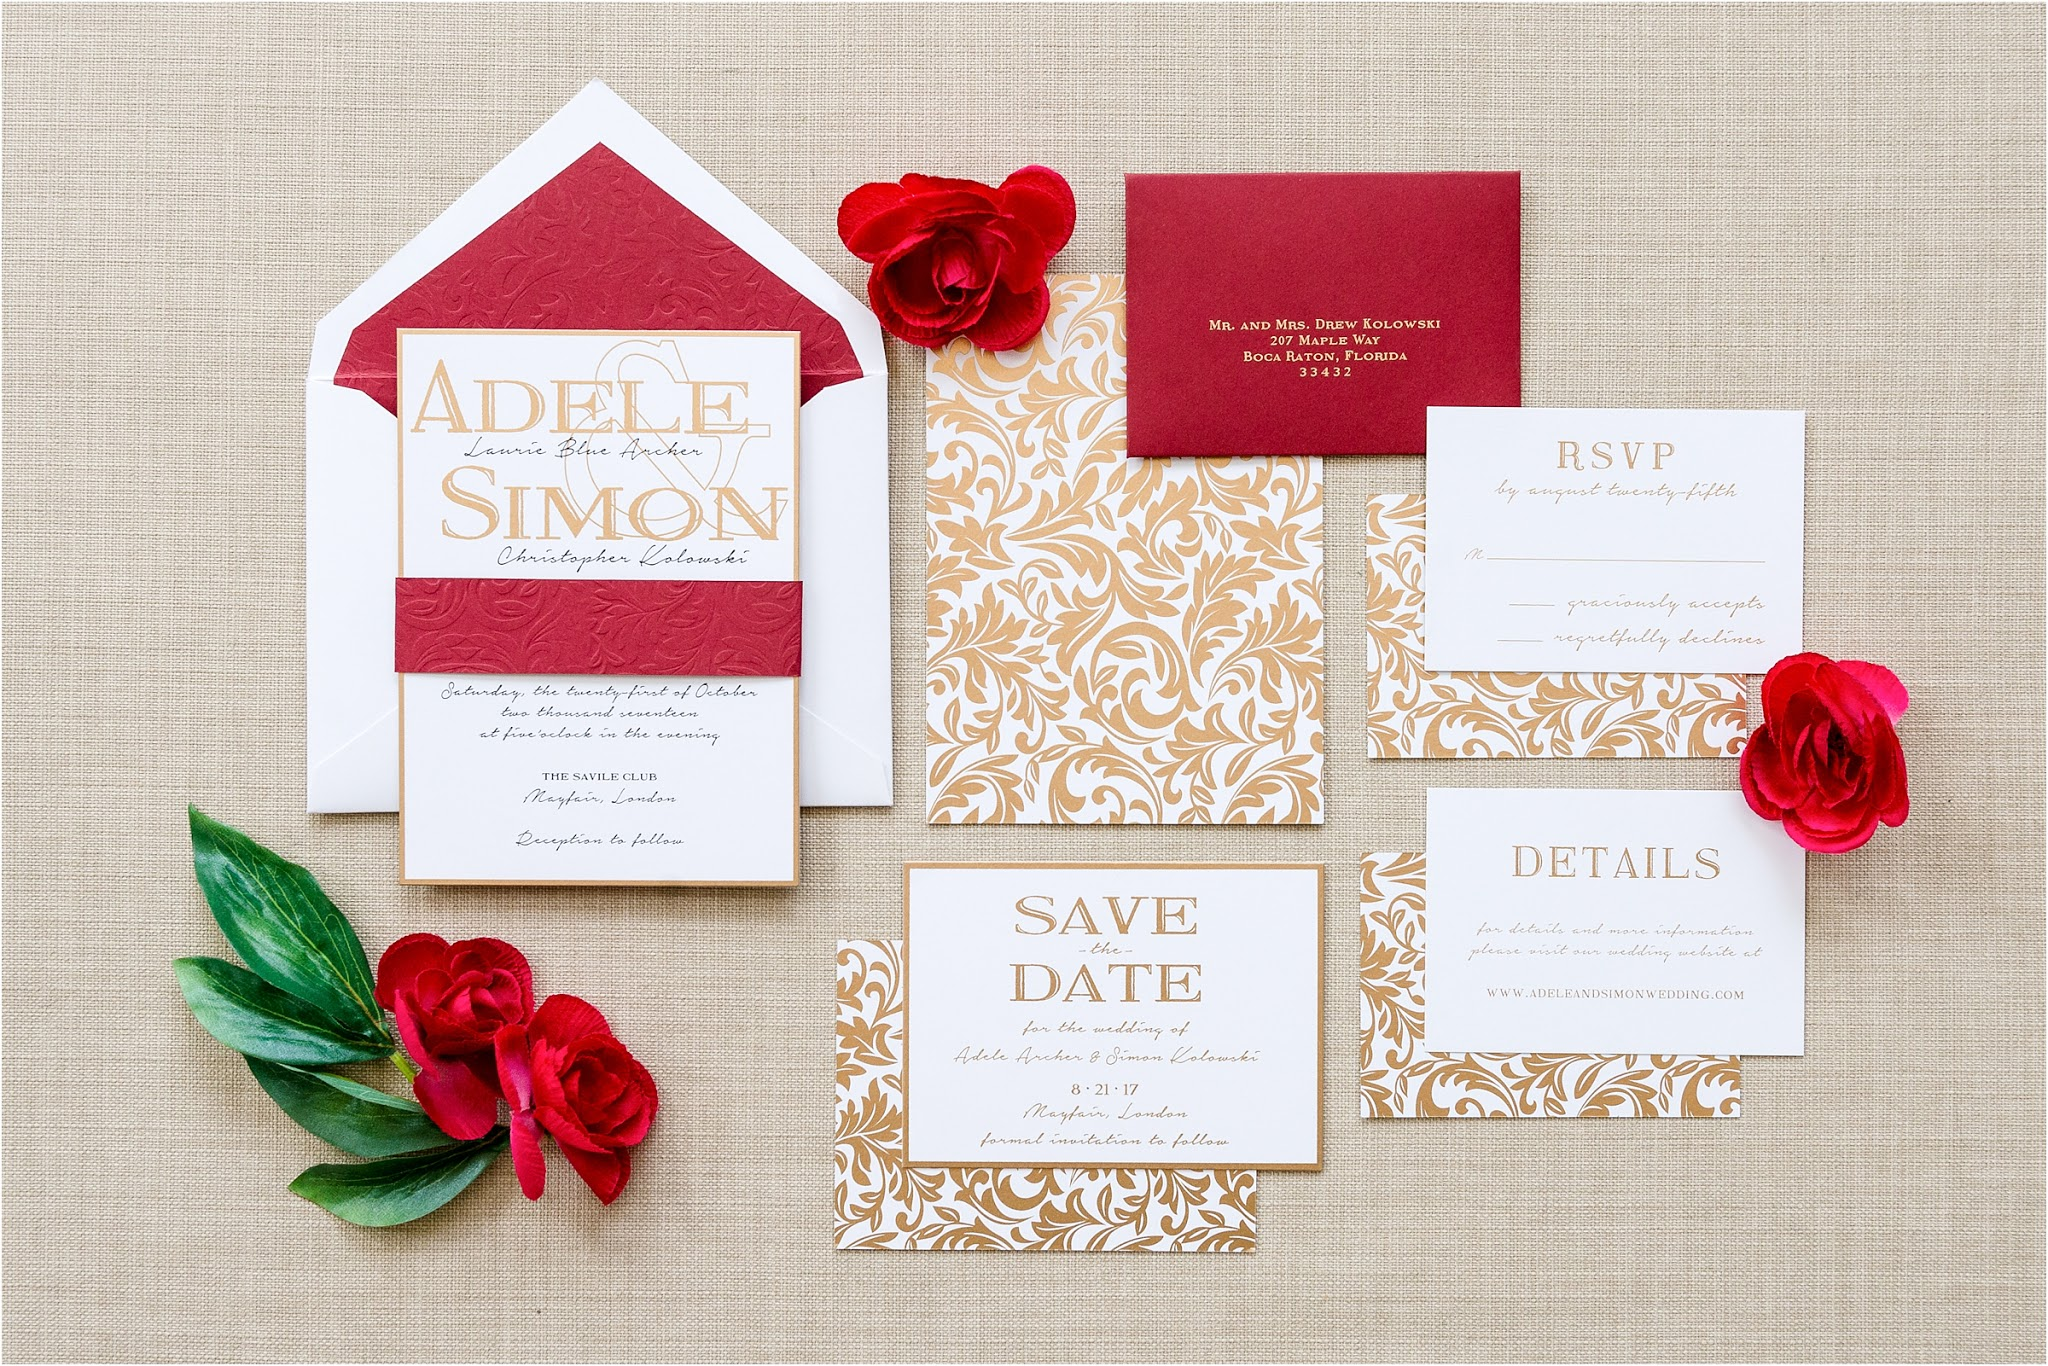 Funky Florida Wedding Invitations Image Collection - Invitations and ...